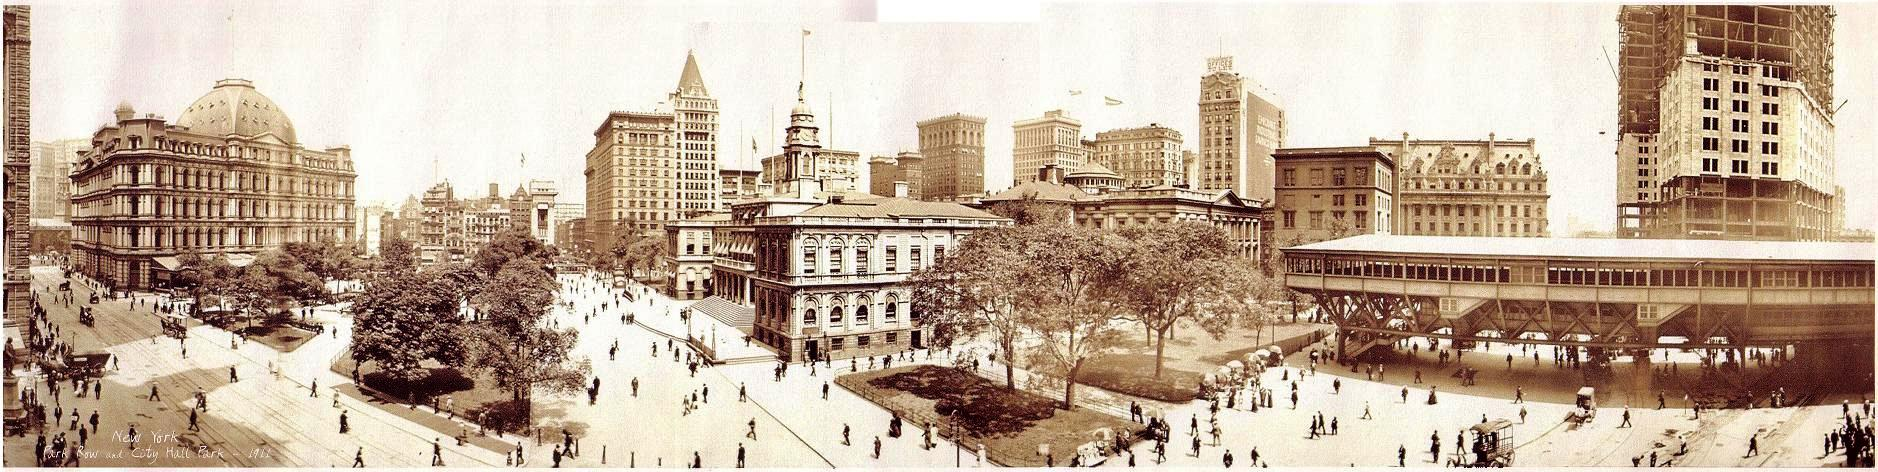 (image source: New York City Hall Library, Wikimedia Commons)